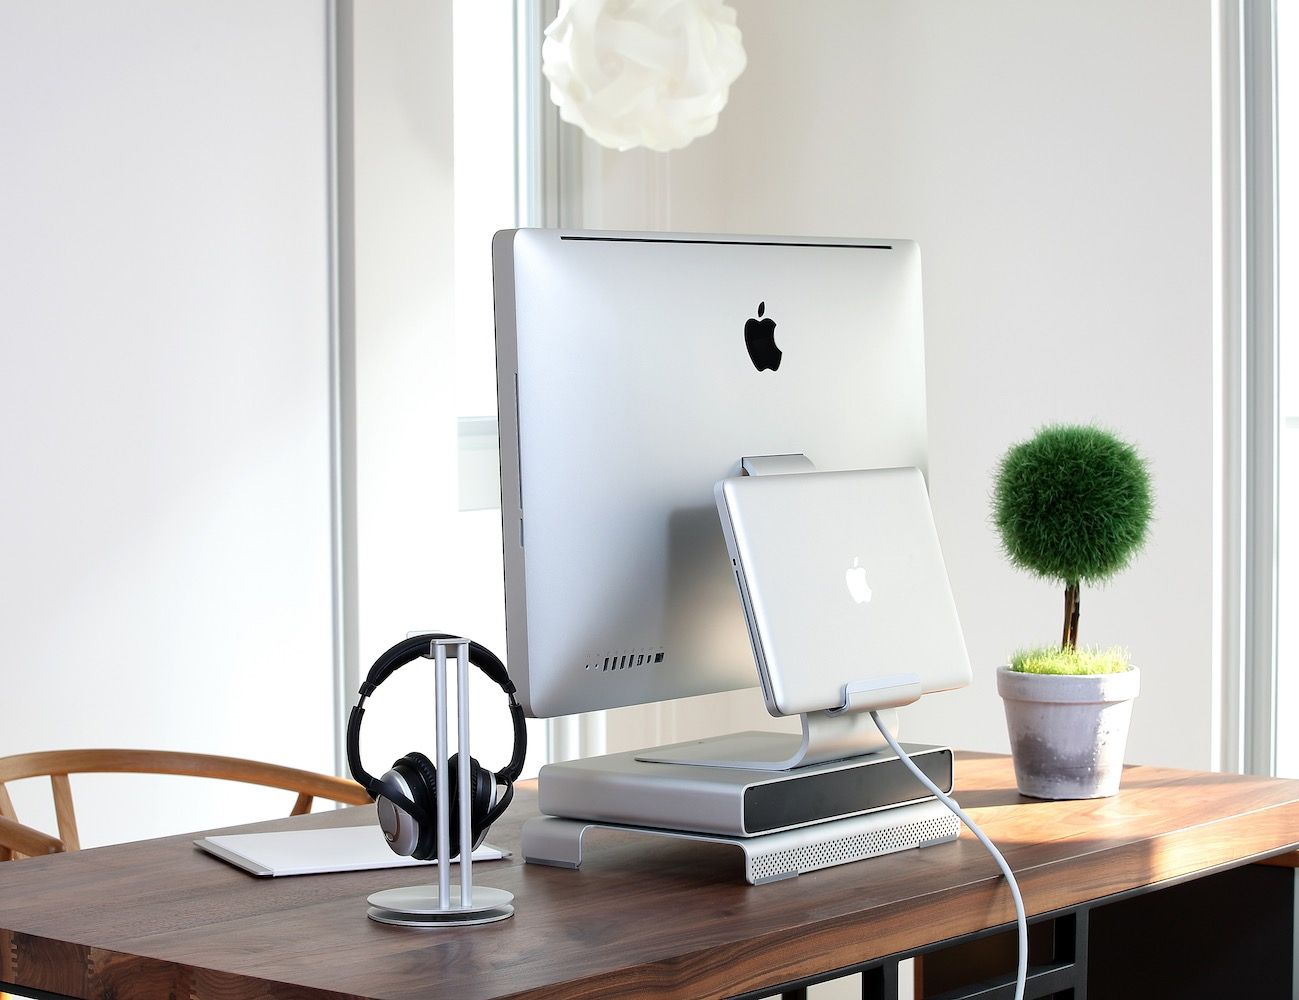 Maximize the space on your desk with the Drawer Monitor Stand by Just Mobile.